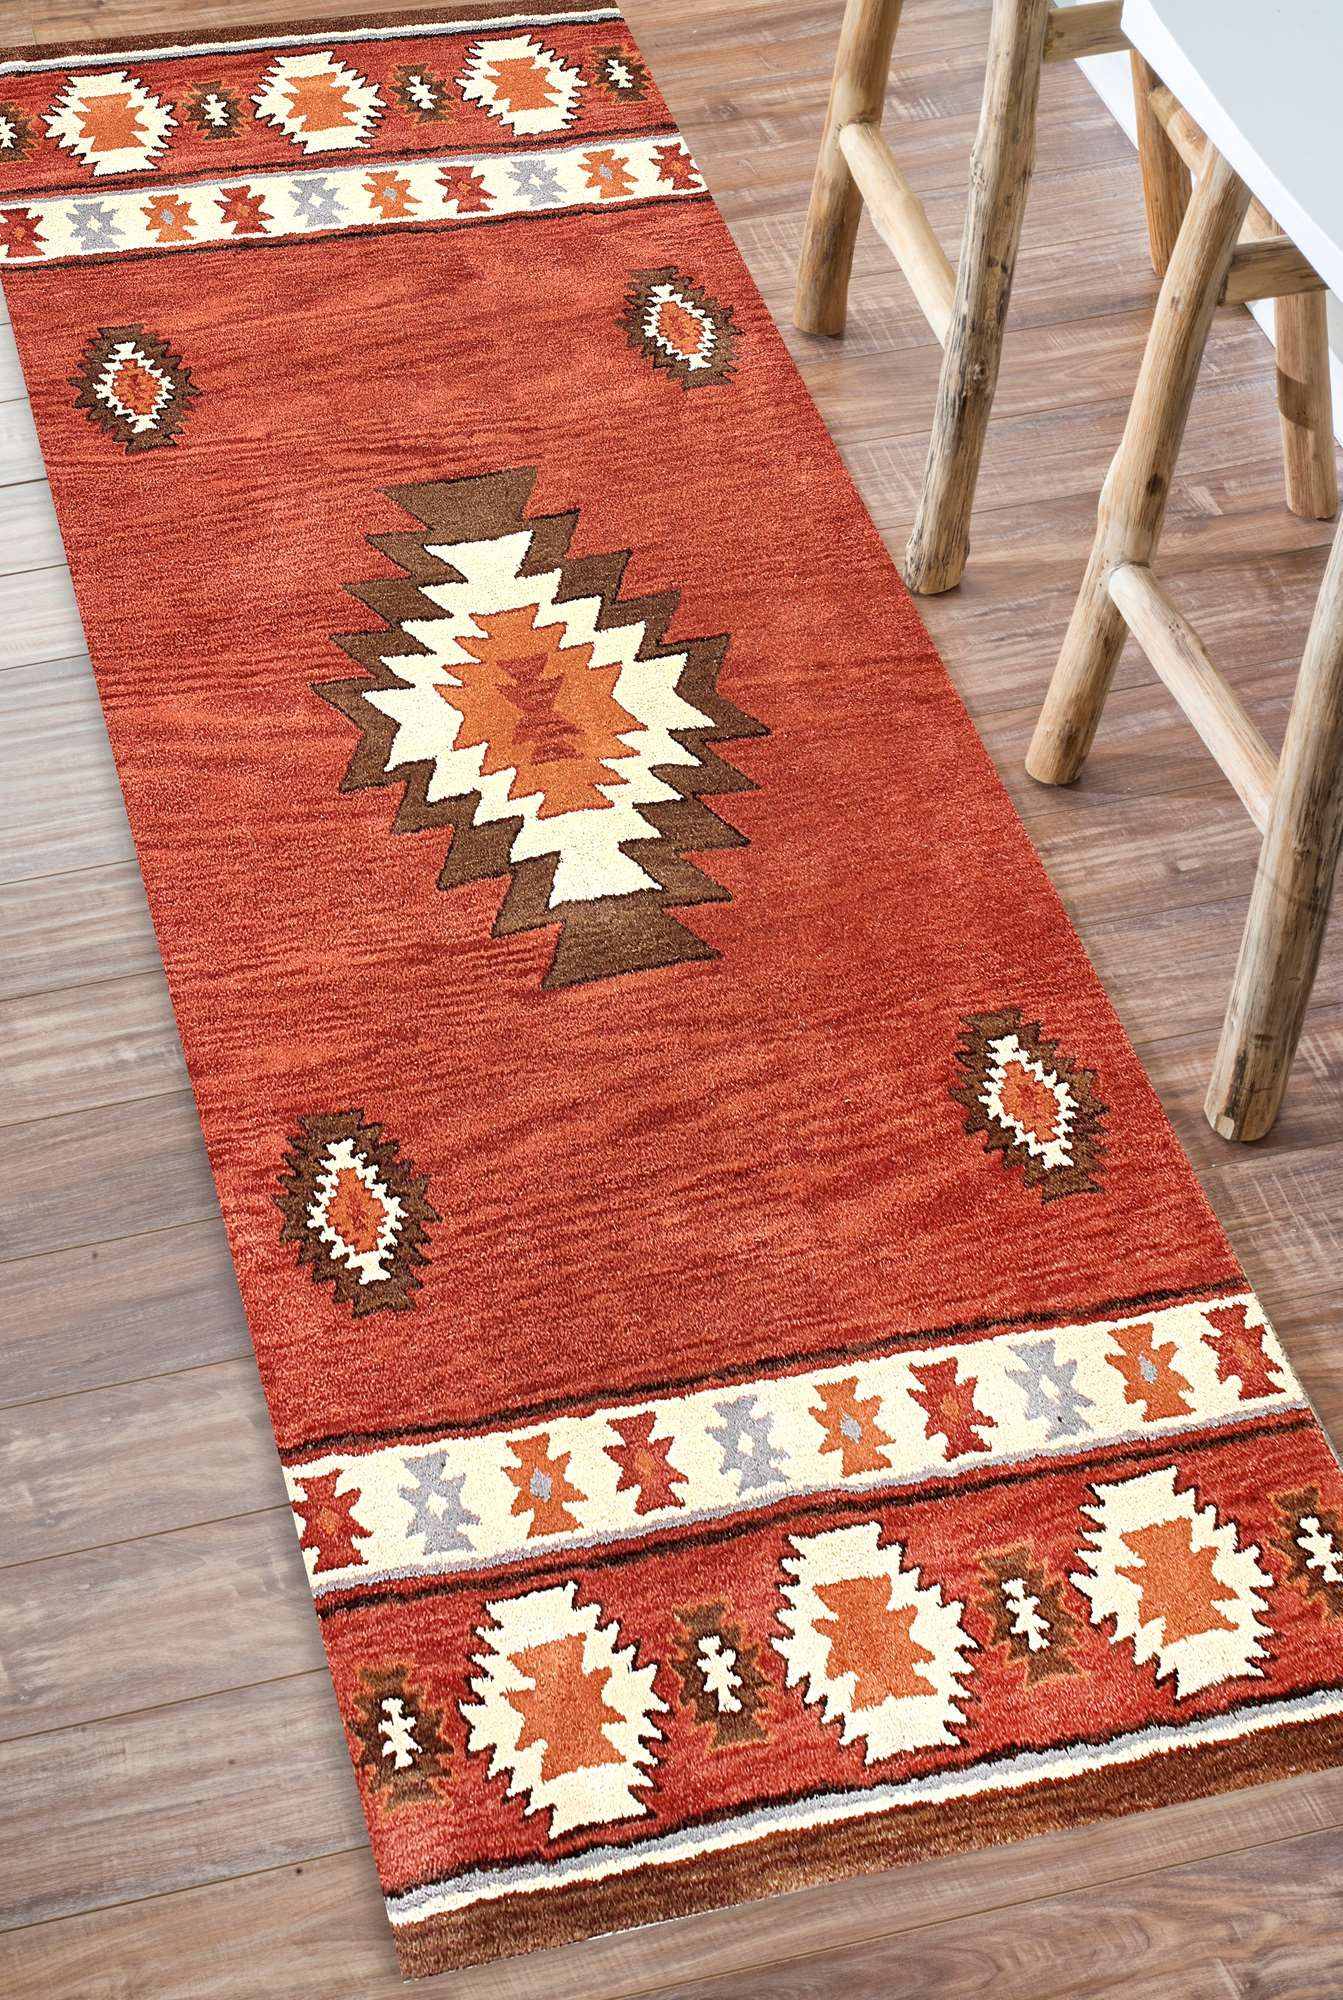 Rugs Usa Area Rugs In Many Styles Including Contemporary Braided Outdoor And Flokati Shag Rugs Buy Rugs At Ame Southwestern Rug Western Rugs Wool Area Rugs